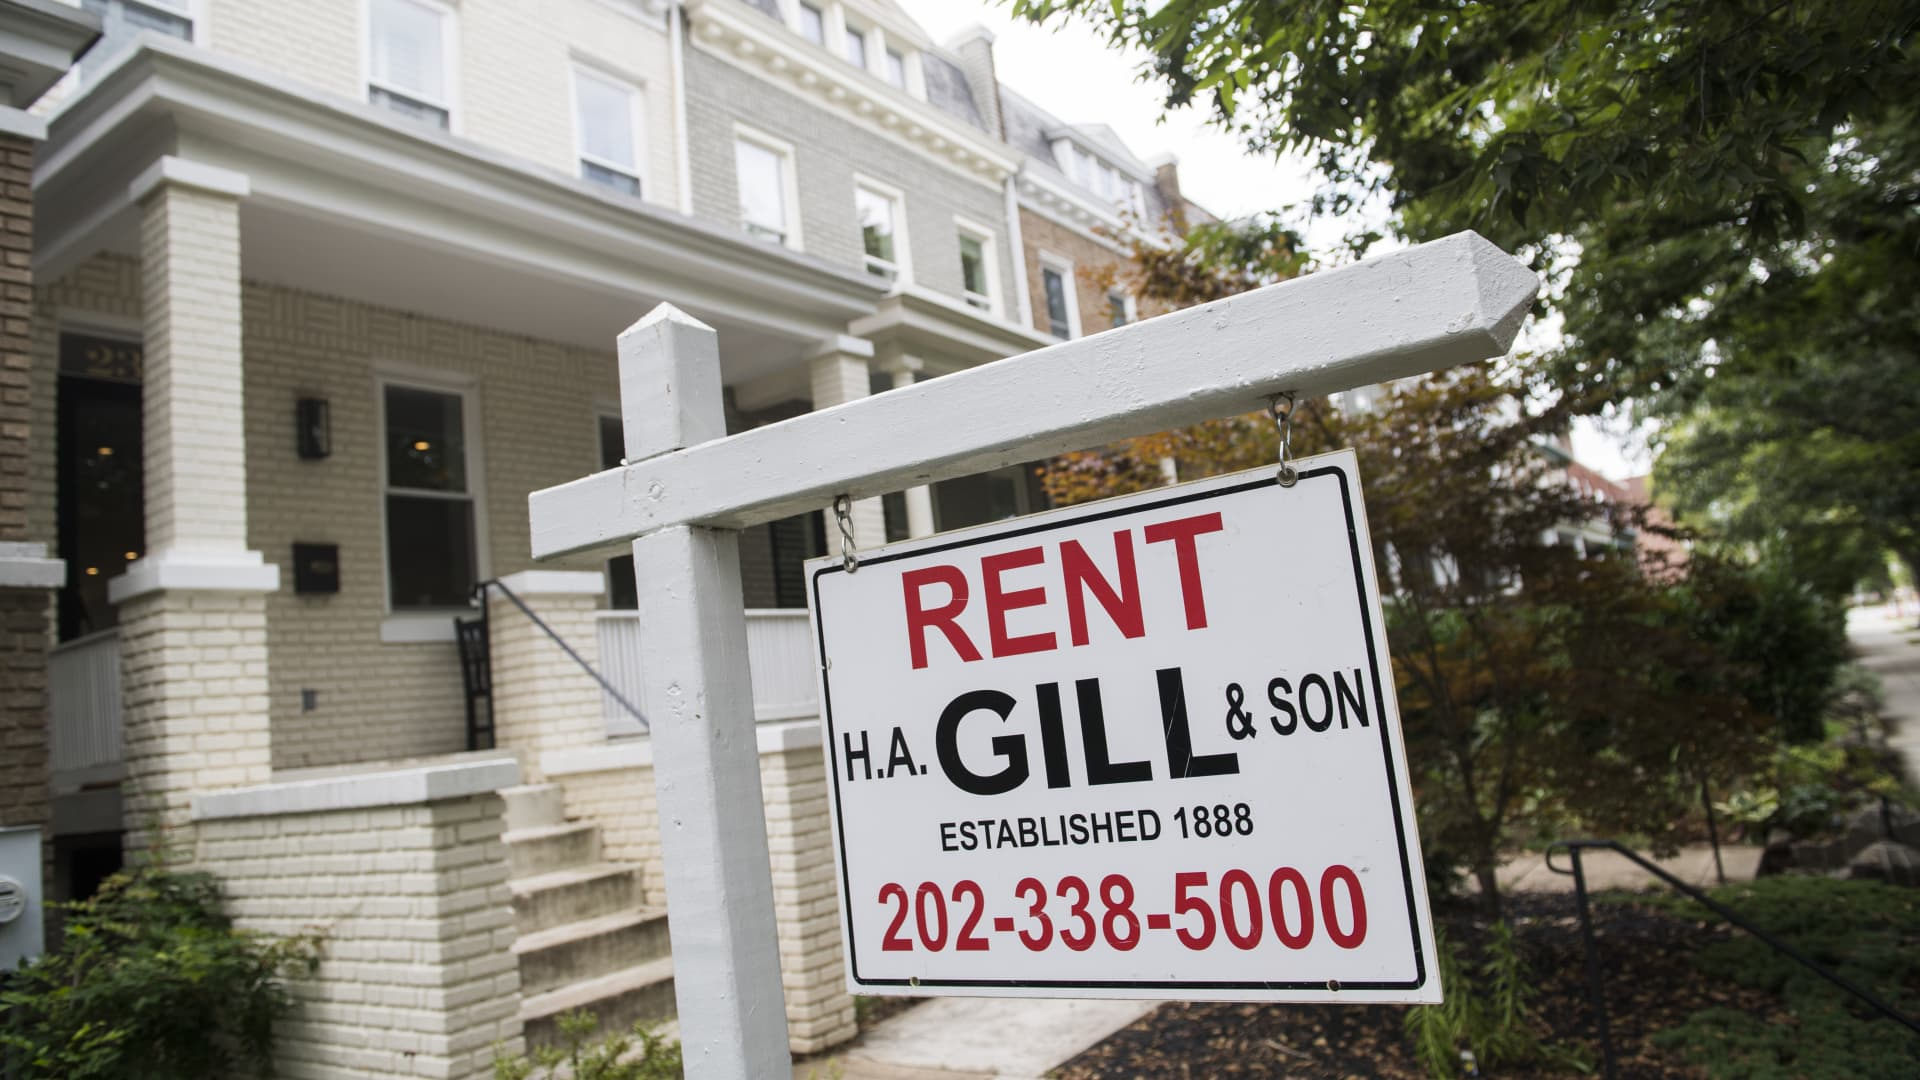 A for rent sign advertising a row house in northeast Capitol Hill, is pictured on Monday, August 26, 2019, in Washington D.C.